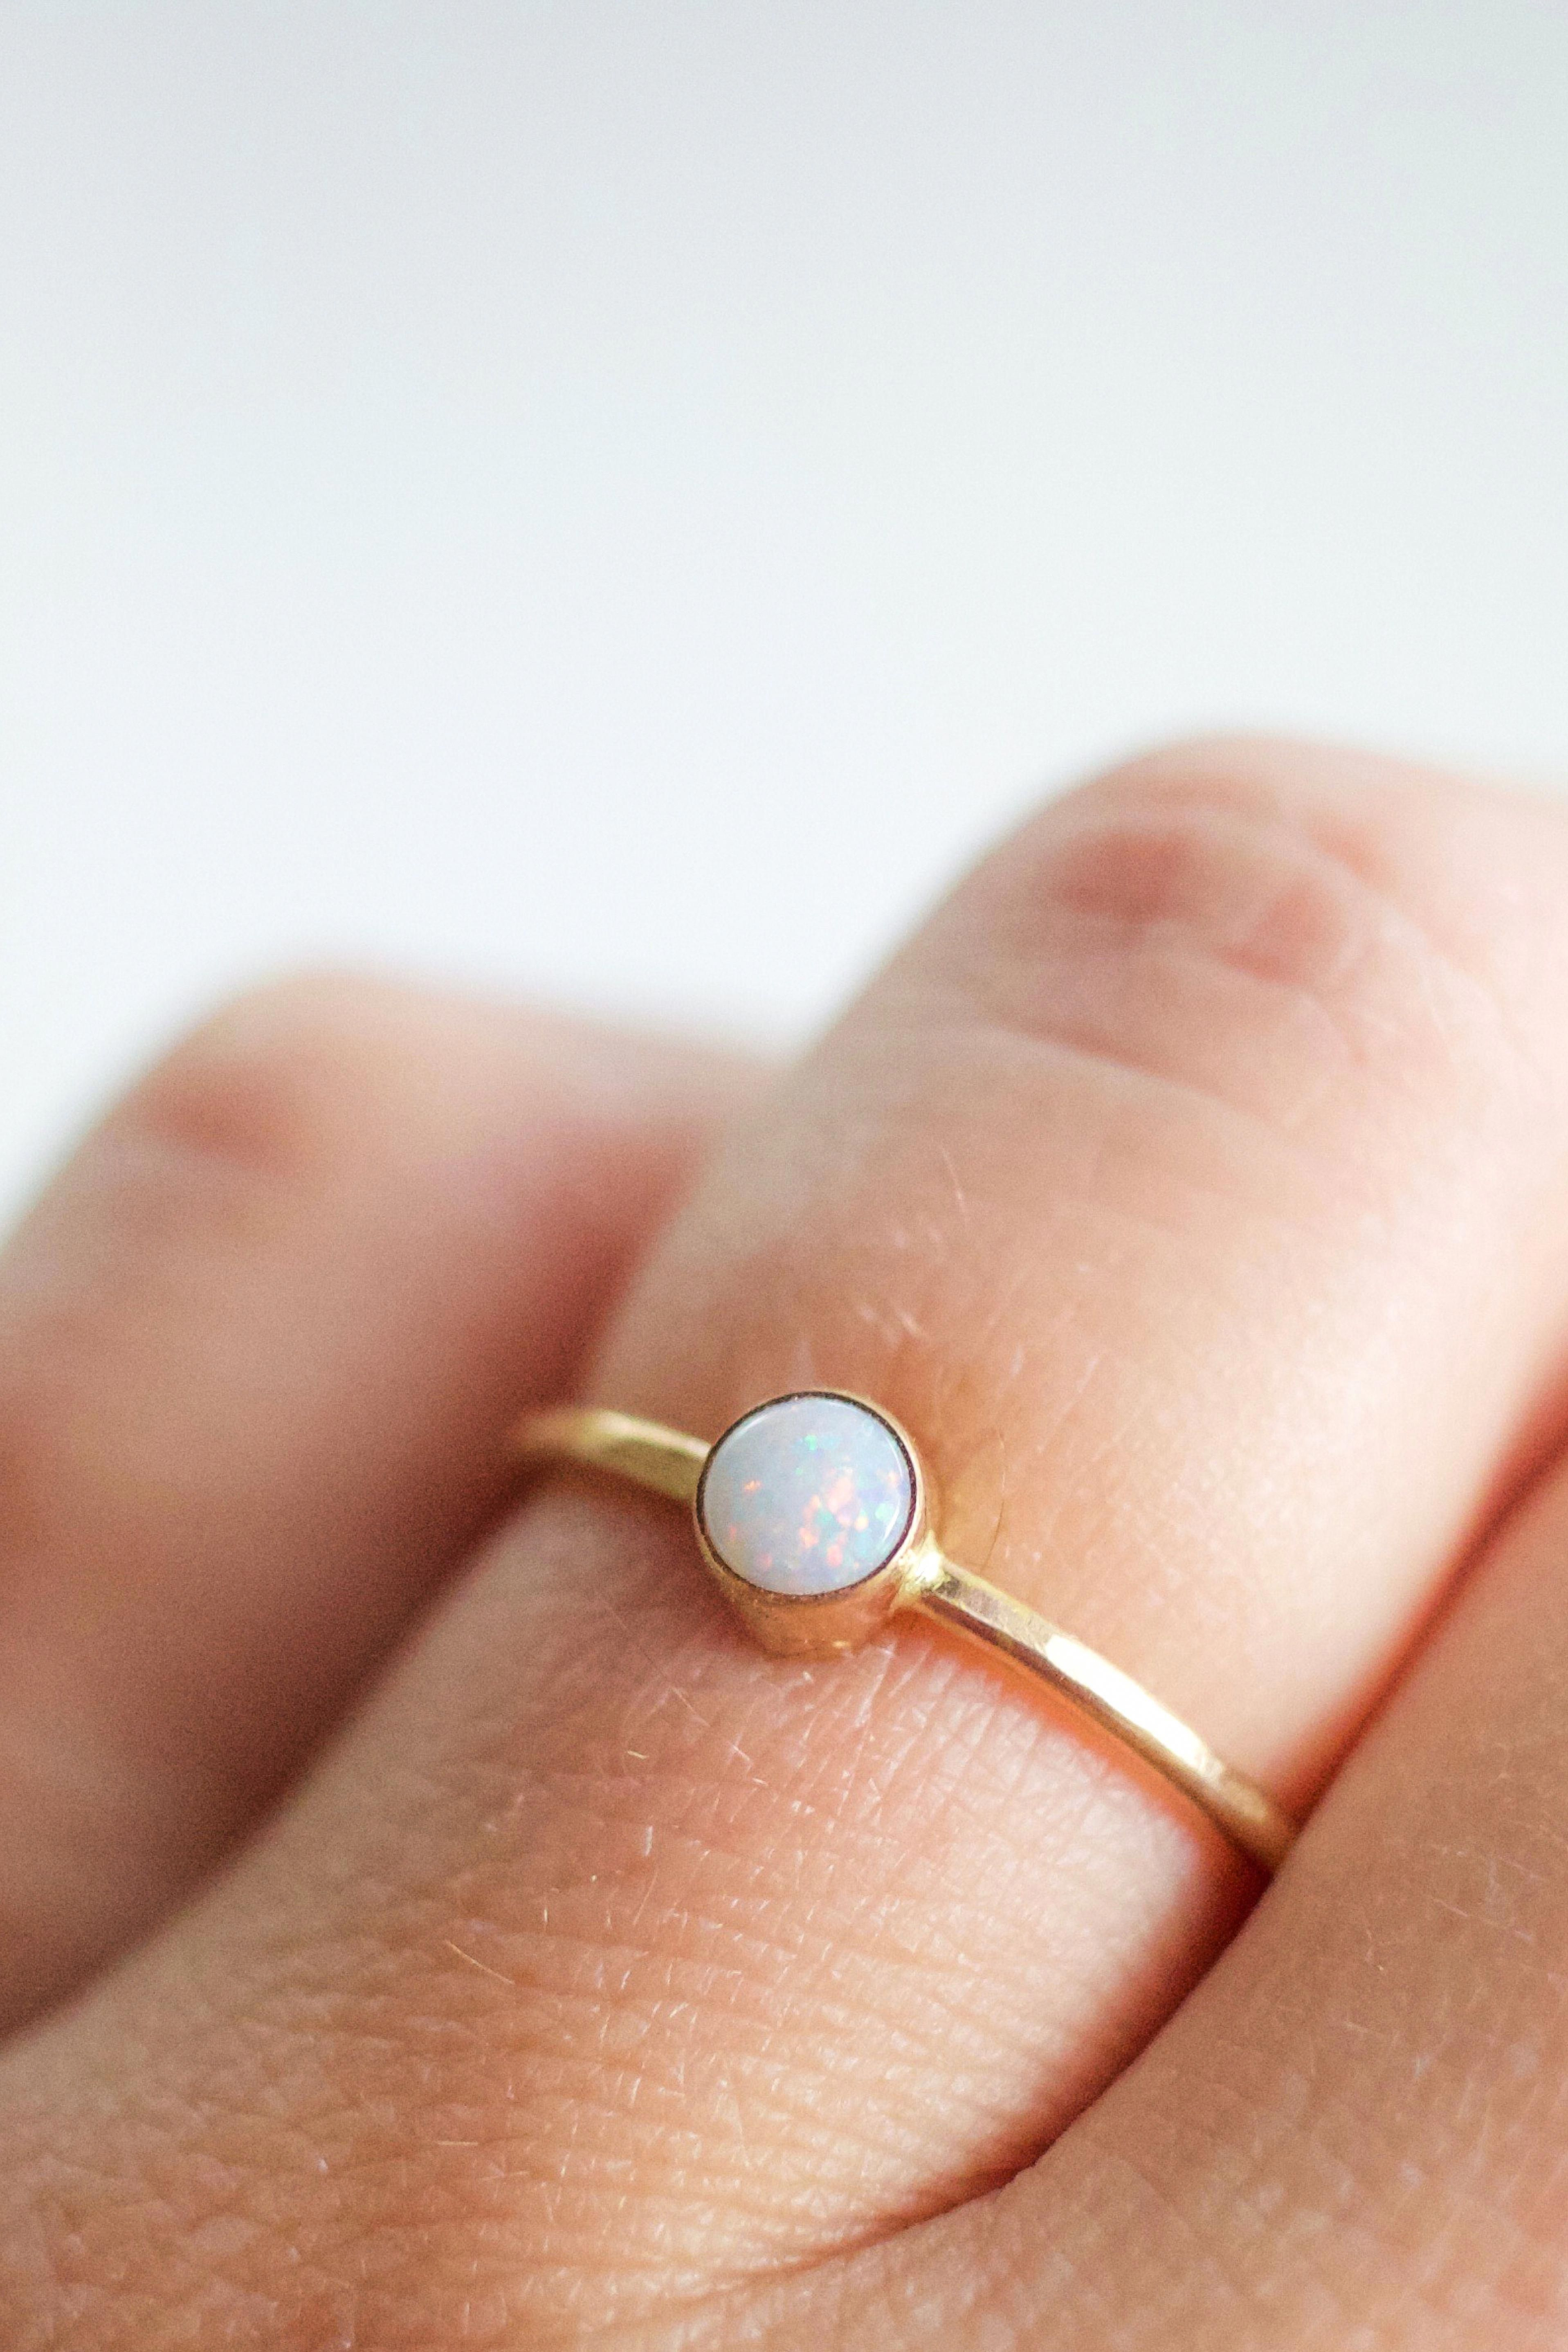 14k Solid Yellow Gold Natural Round Opal Gemstone Engagement Band Stackable Ring Handmade Minimalist Jewelry